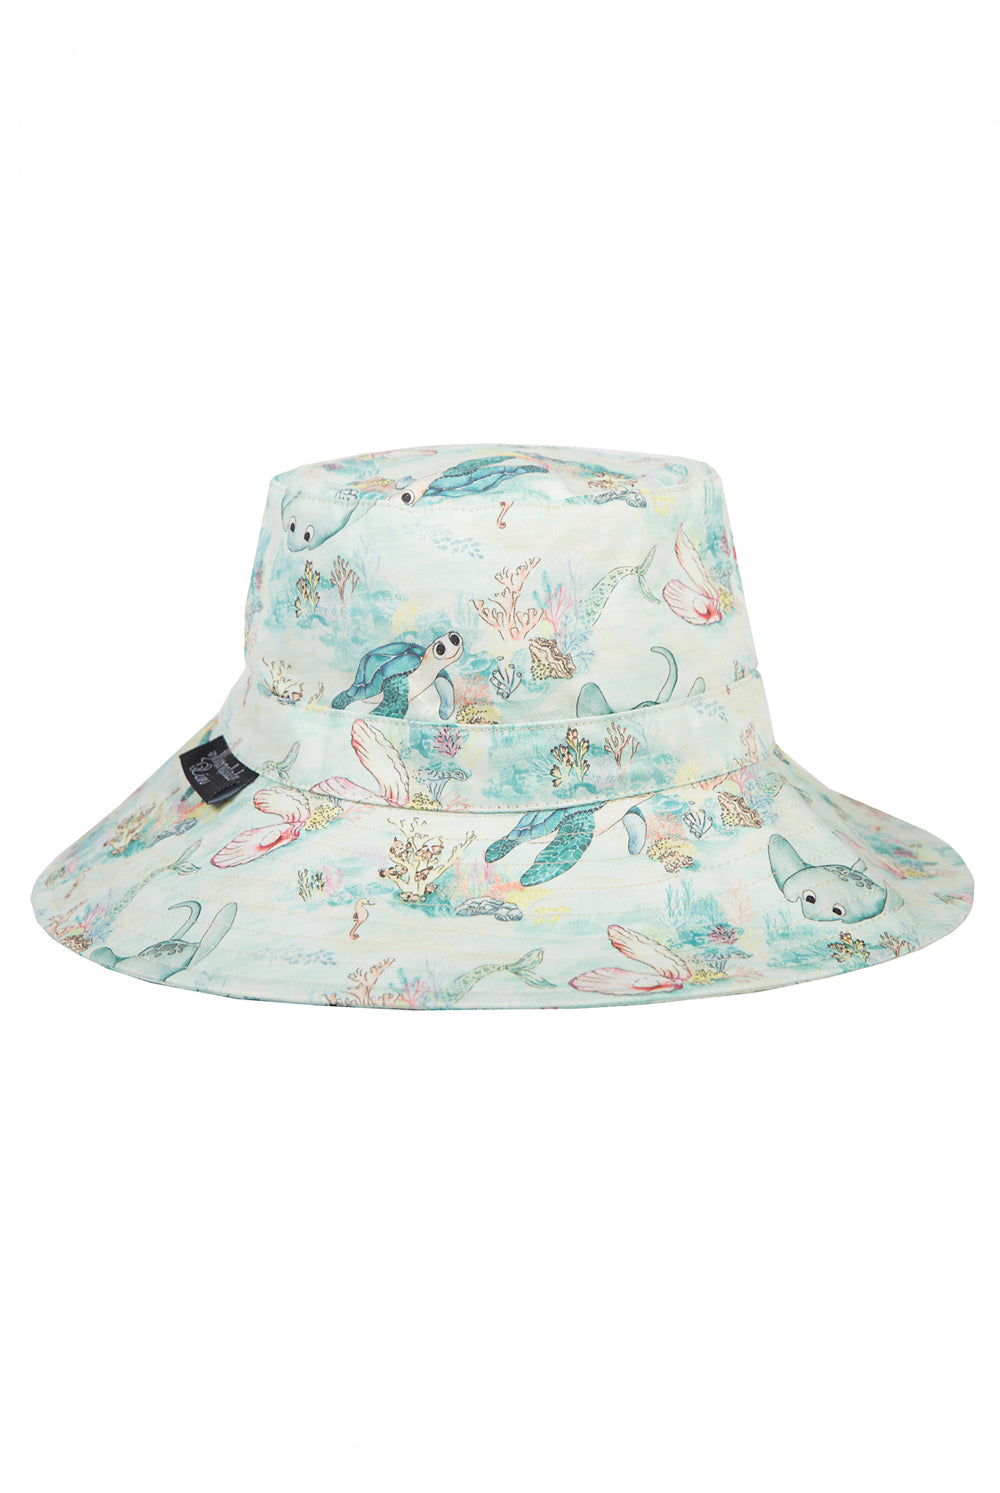 Lady Elliot Island Children's Sun Hat